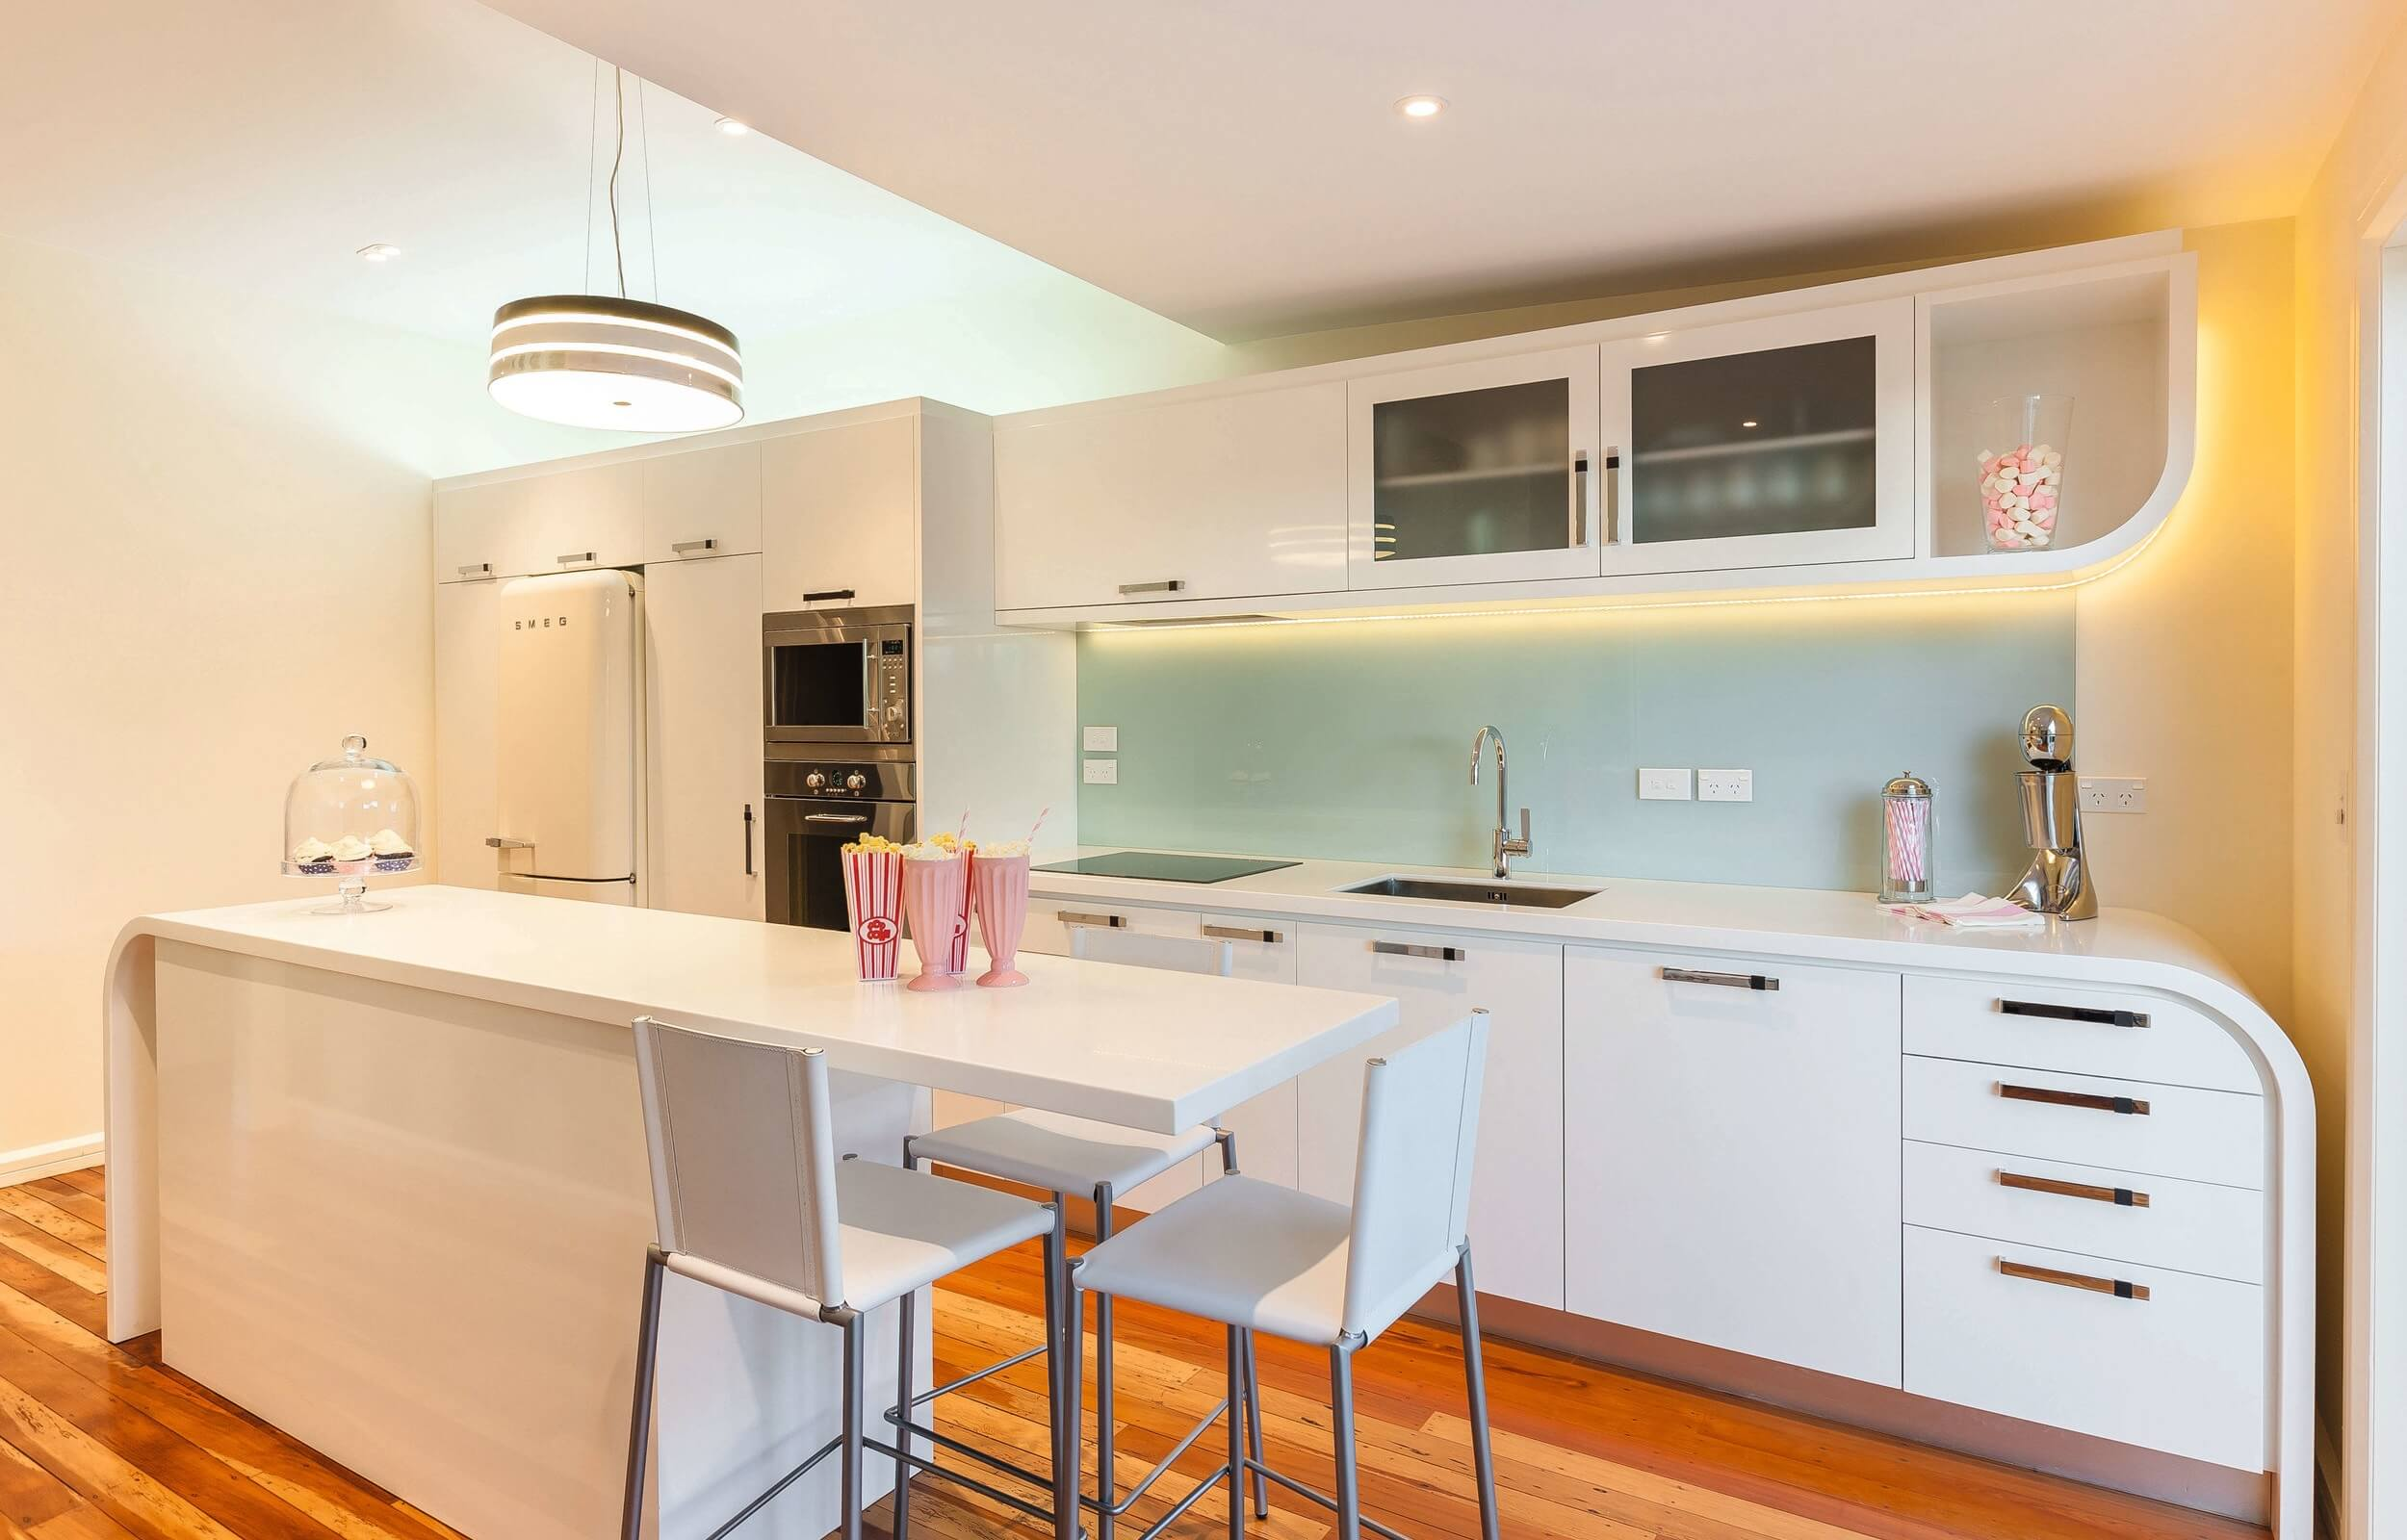 Kitchen by Mal Corboy / Photography by Kallen MacLeod